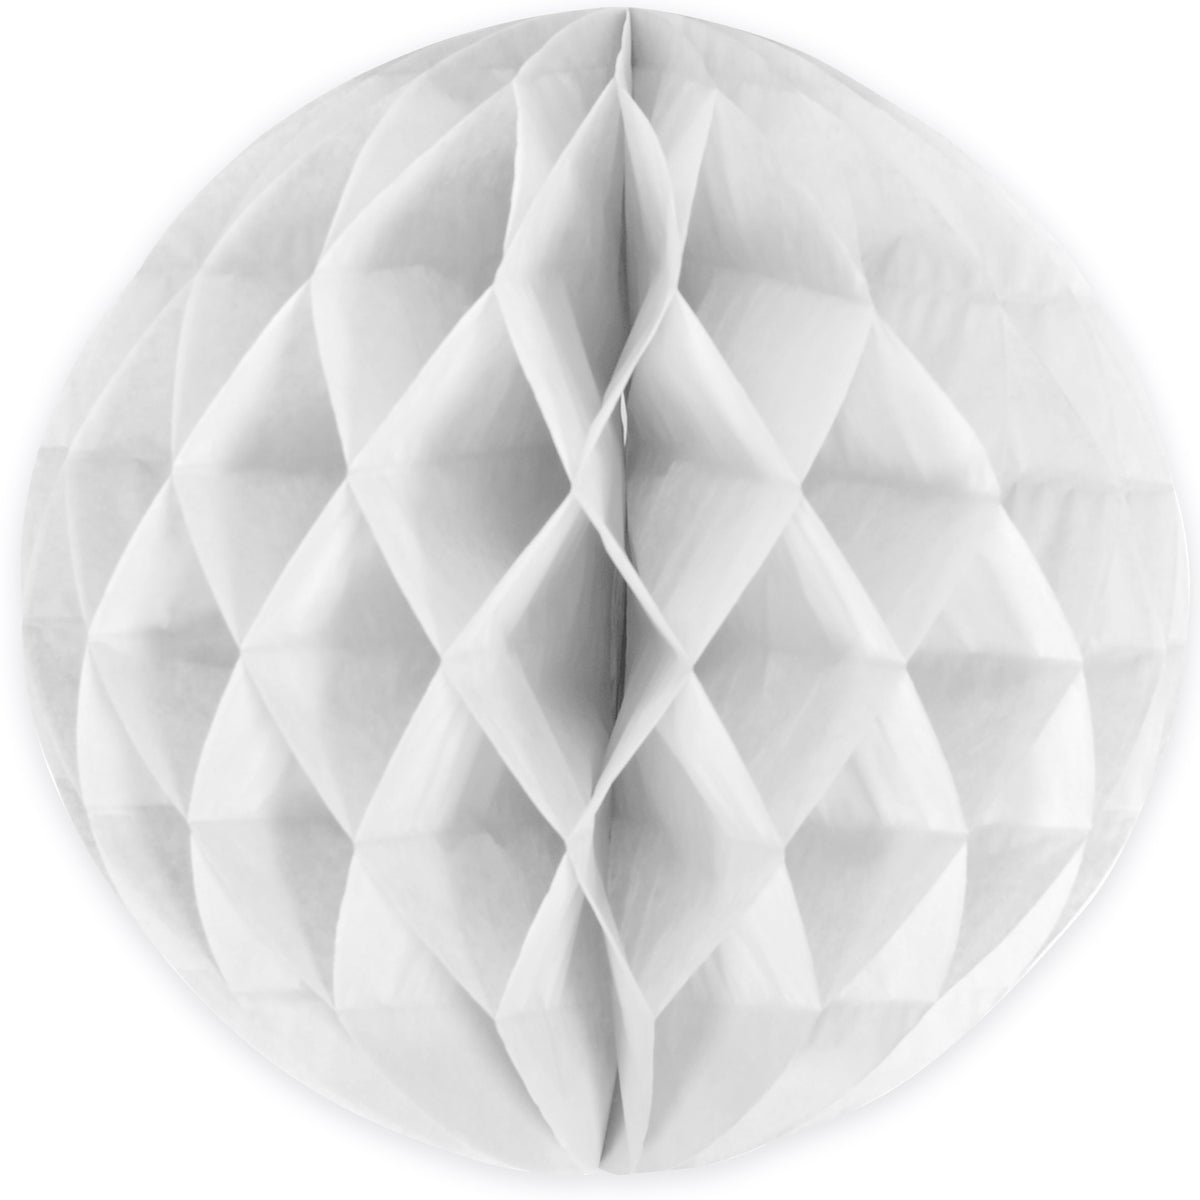 White Honeycomb Tissue Balls